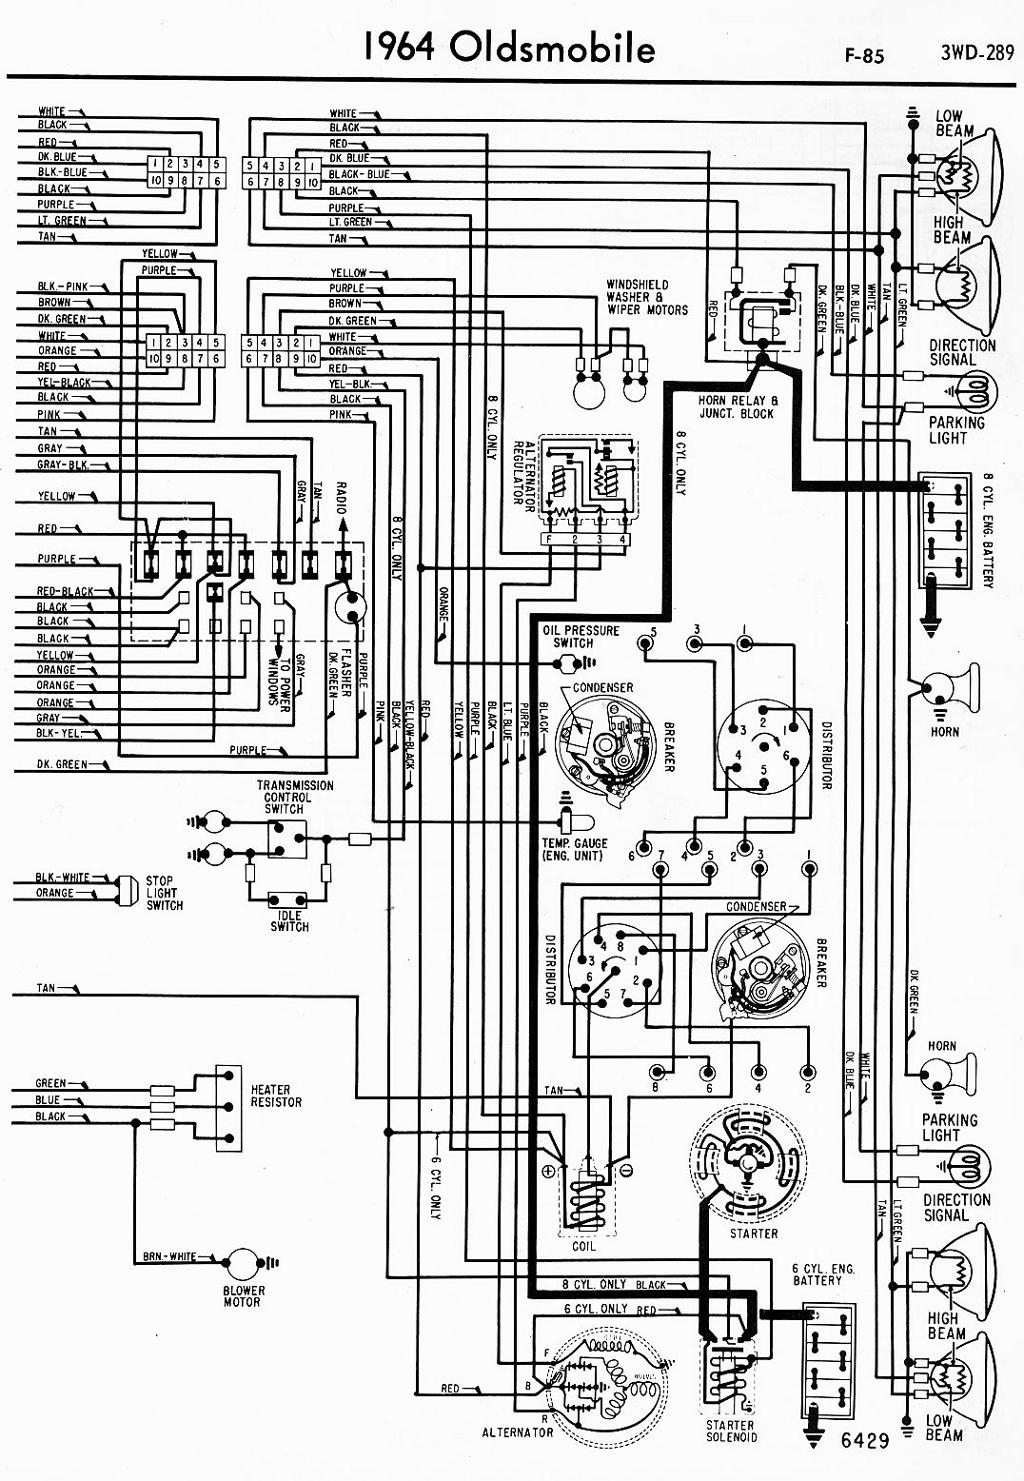 small resolution of 1967 oldsmobile toronado wiring diagram wiring library rh 50 skriptoase de 1968 oldsmobile cutlass wiring